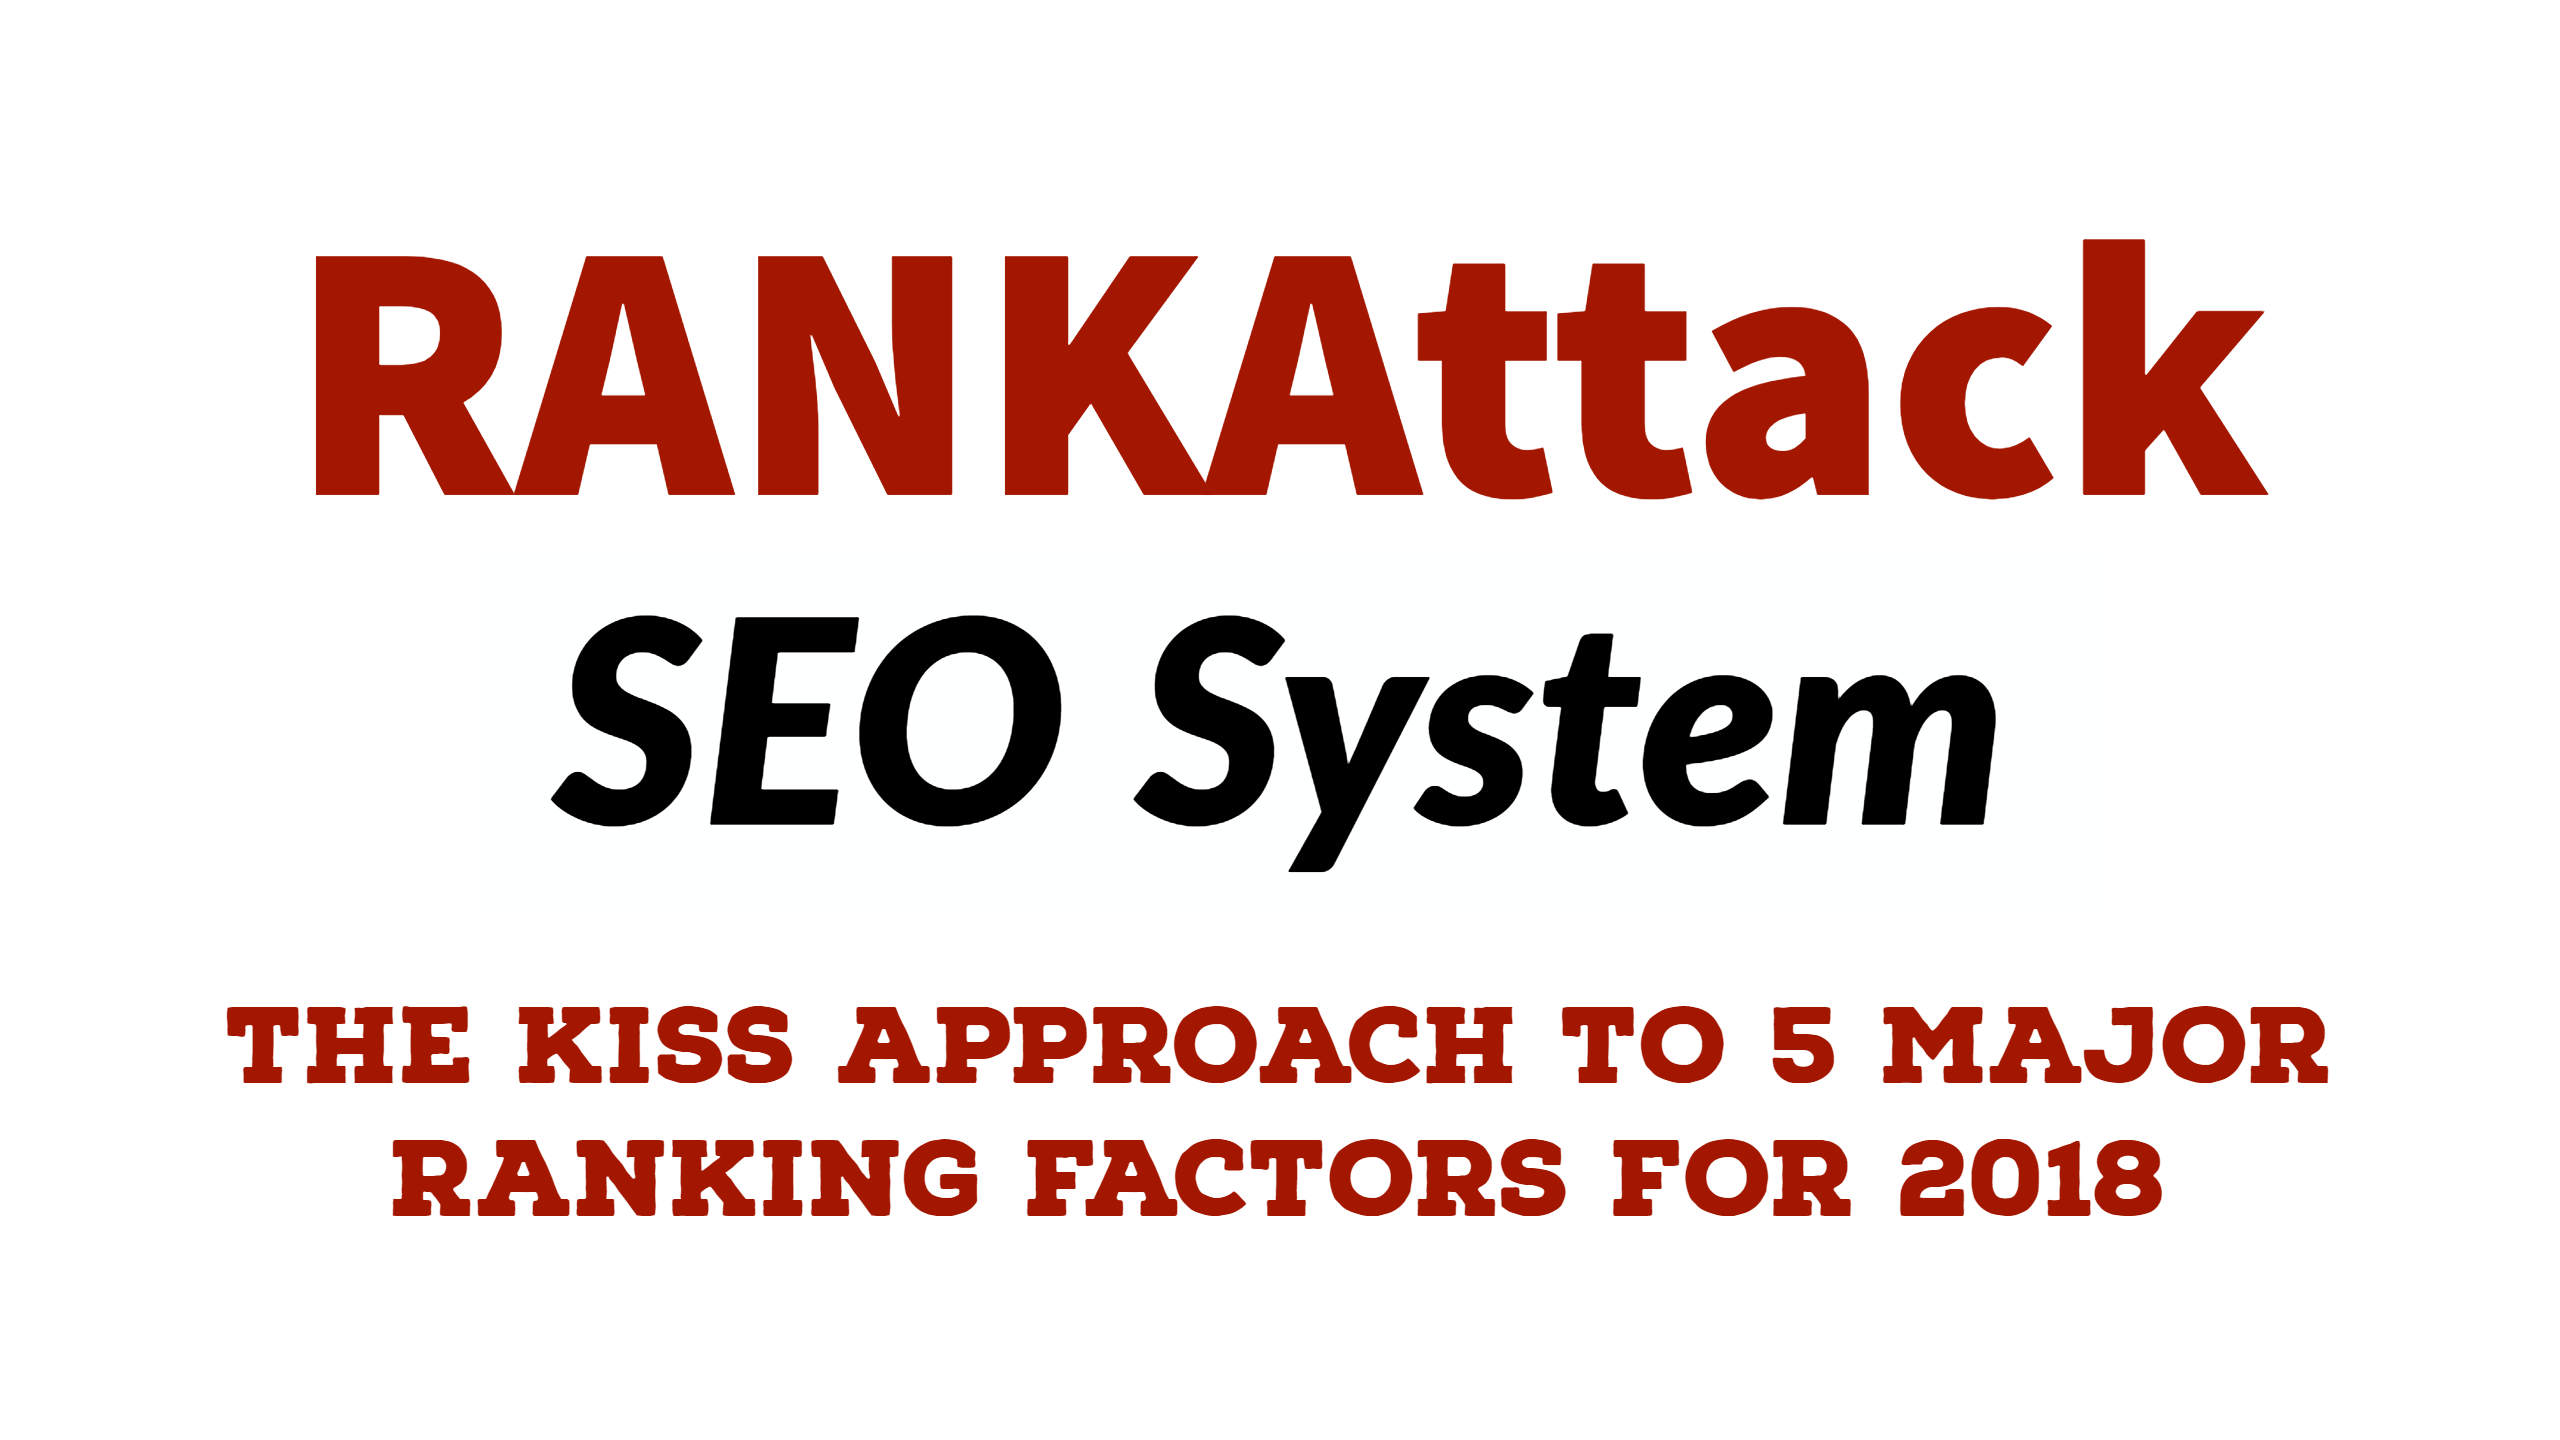 Rankattack SEO System - 5 major ranking factors for 2018 made simple